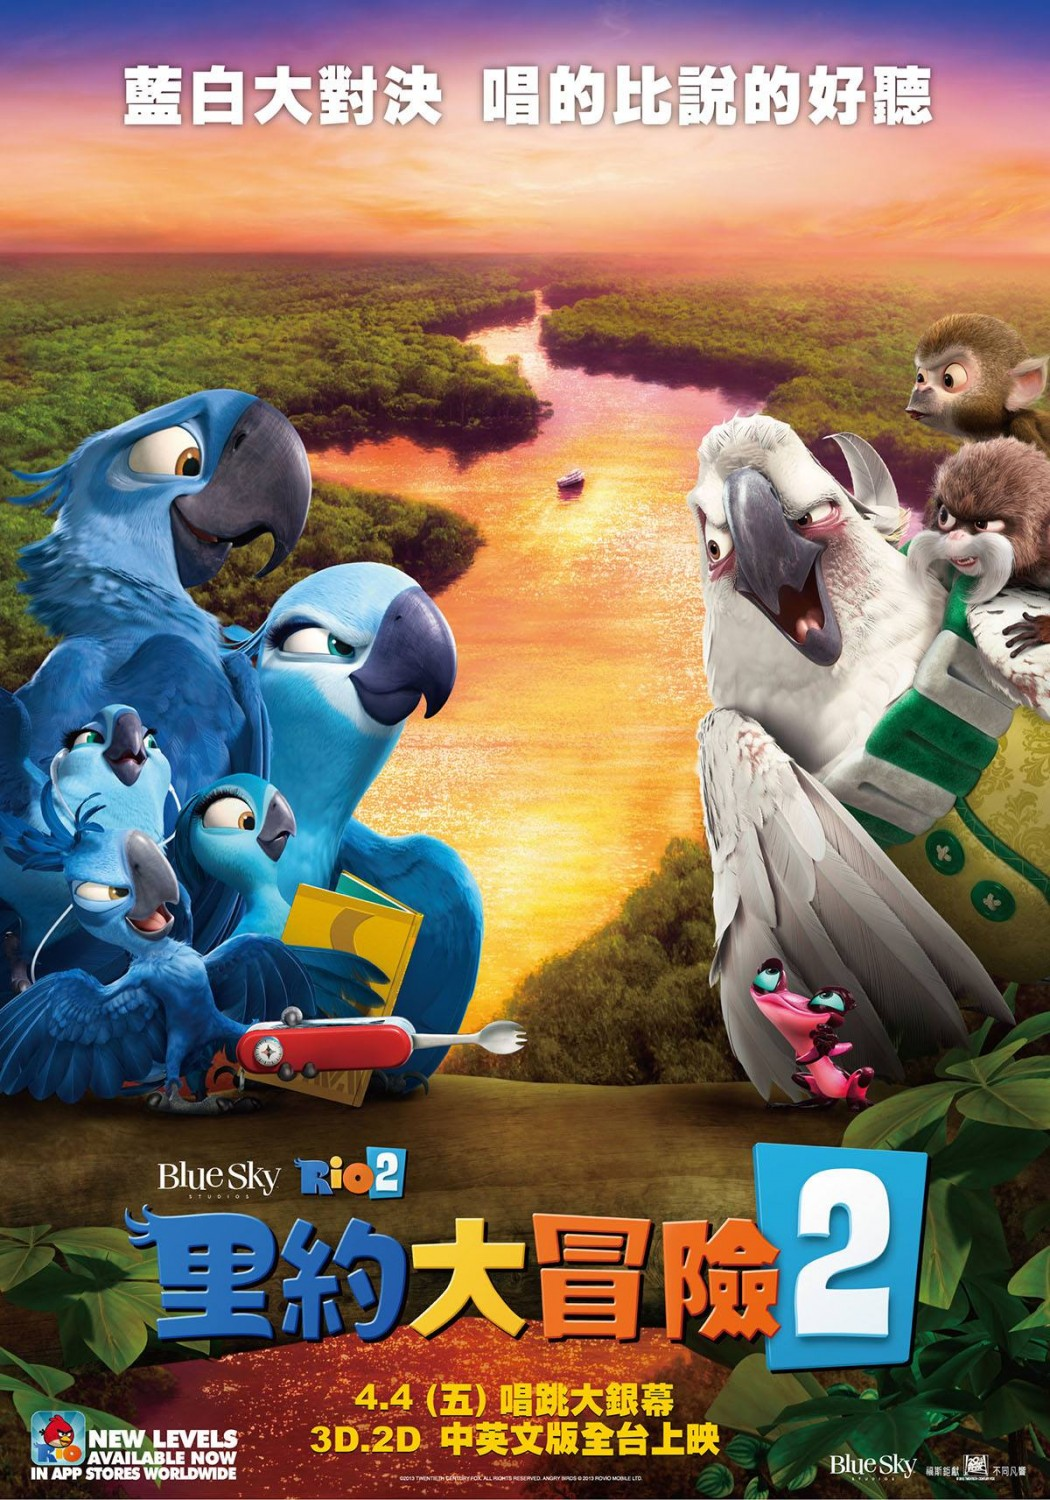 Rio 2-Official Poster Banner PROMO POSTER XLG-14JANEIRO2014